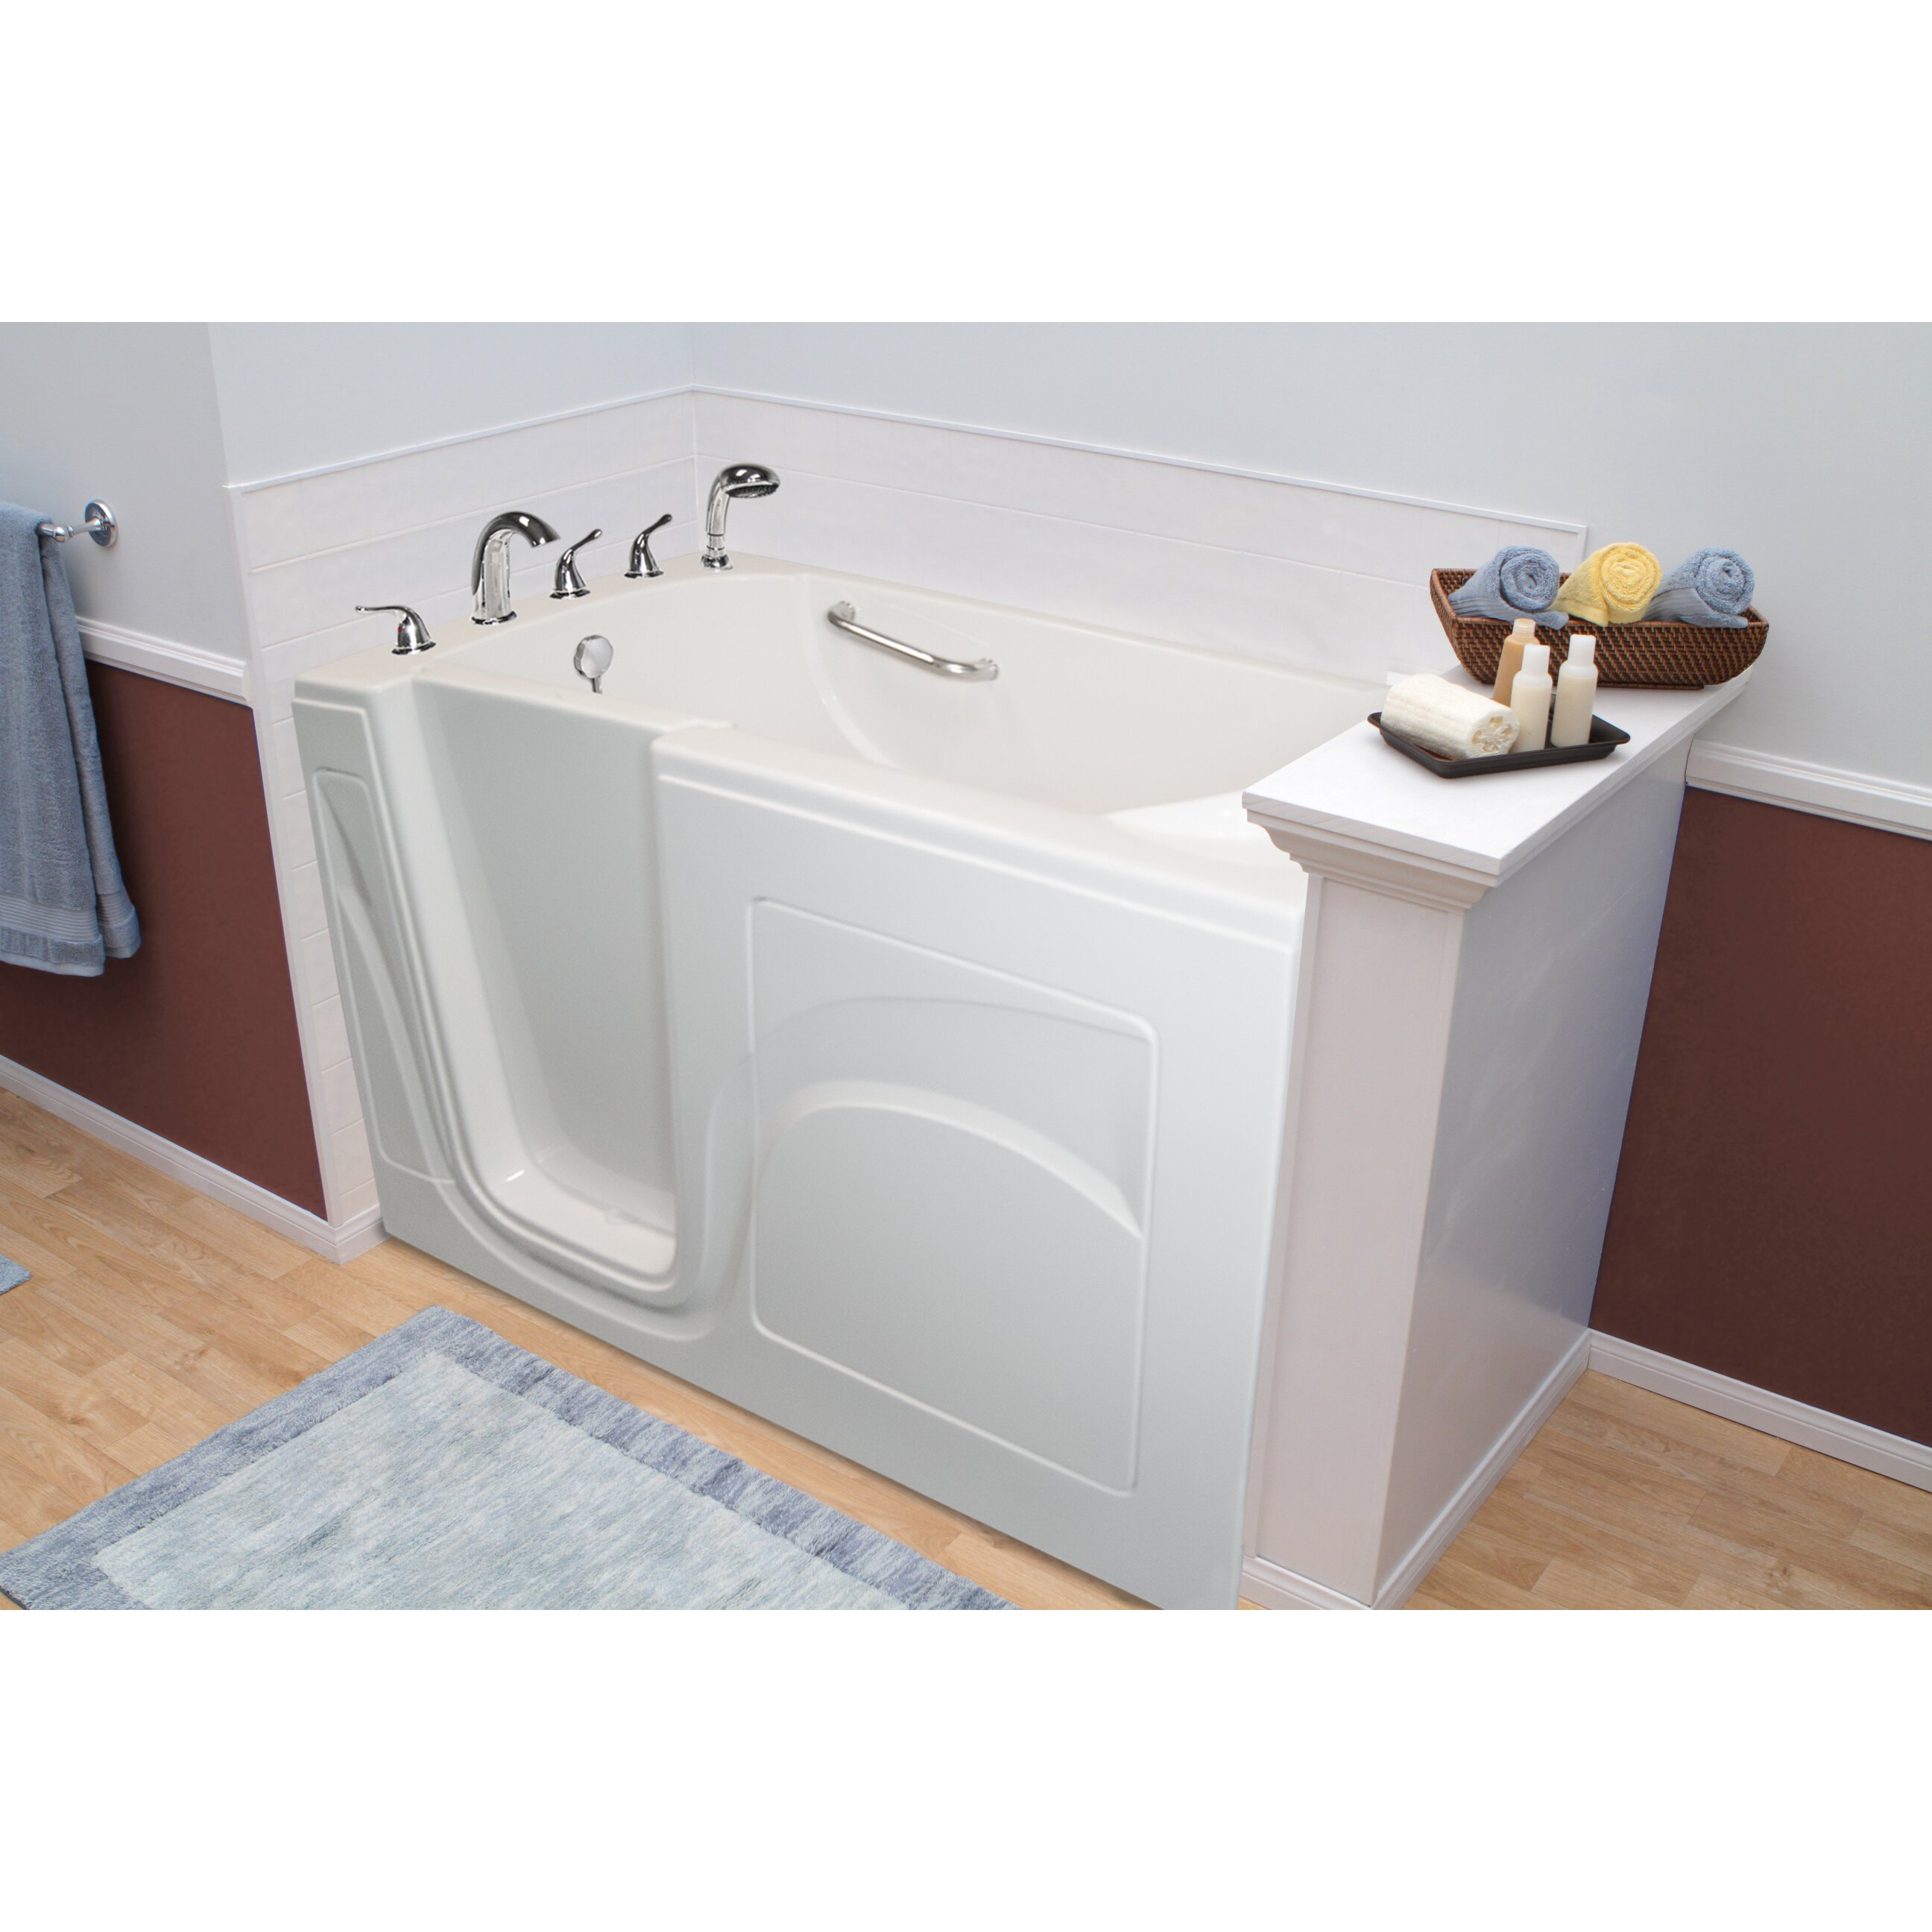 The Best 100+ 54 Inch Whirlpool Tub Image Collections (nickbarron.co ...